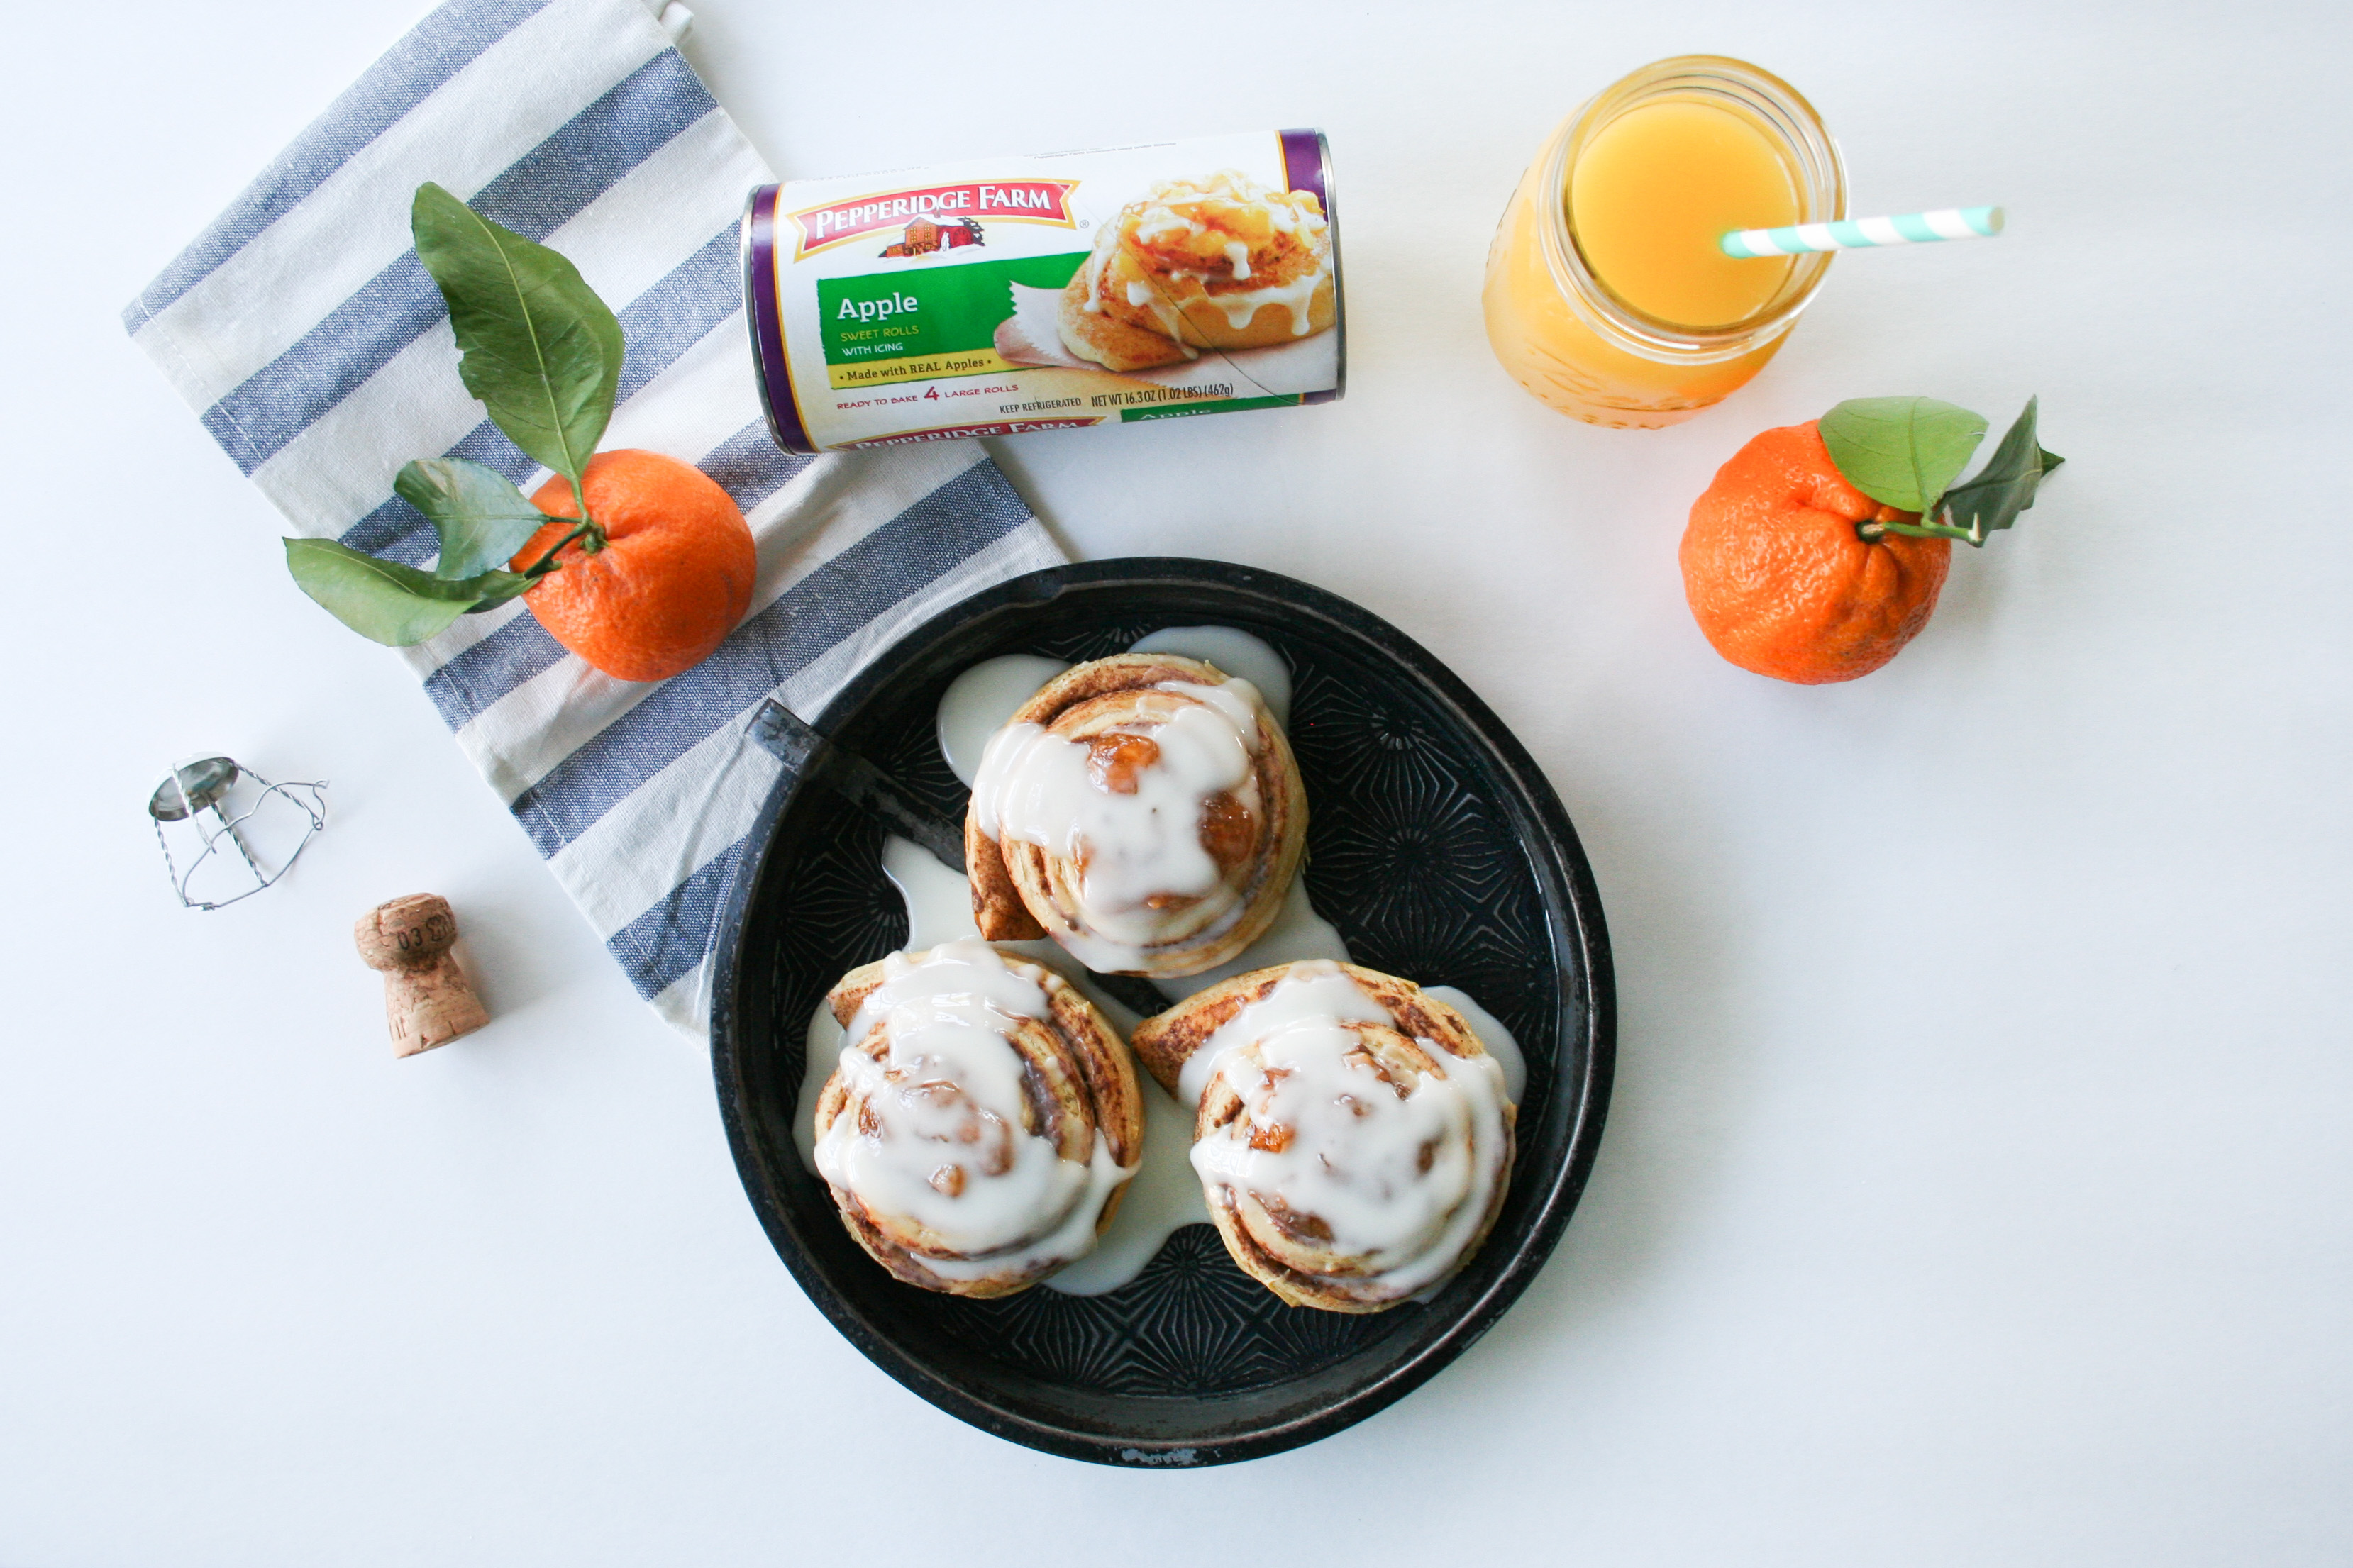 Apple Cinnamon Rolls Mimosa Glaze - Legal Miss Sunshine